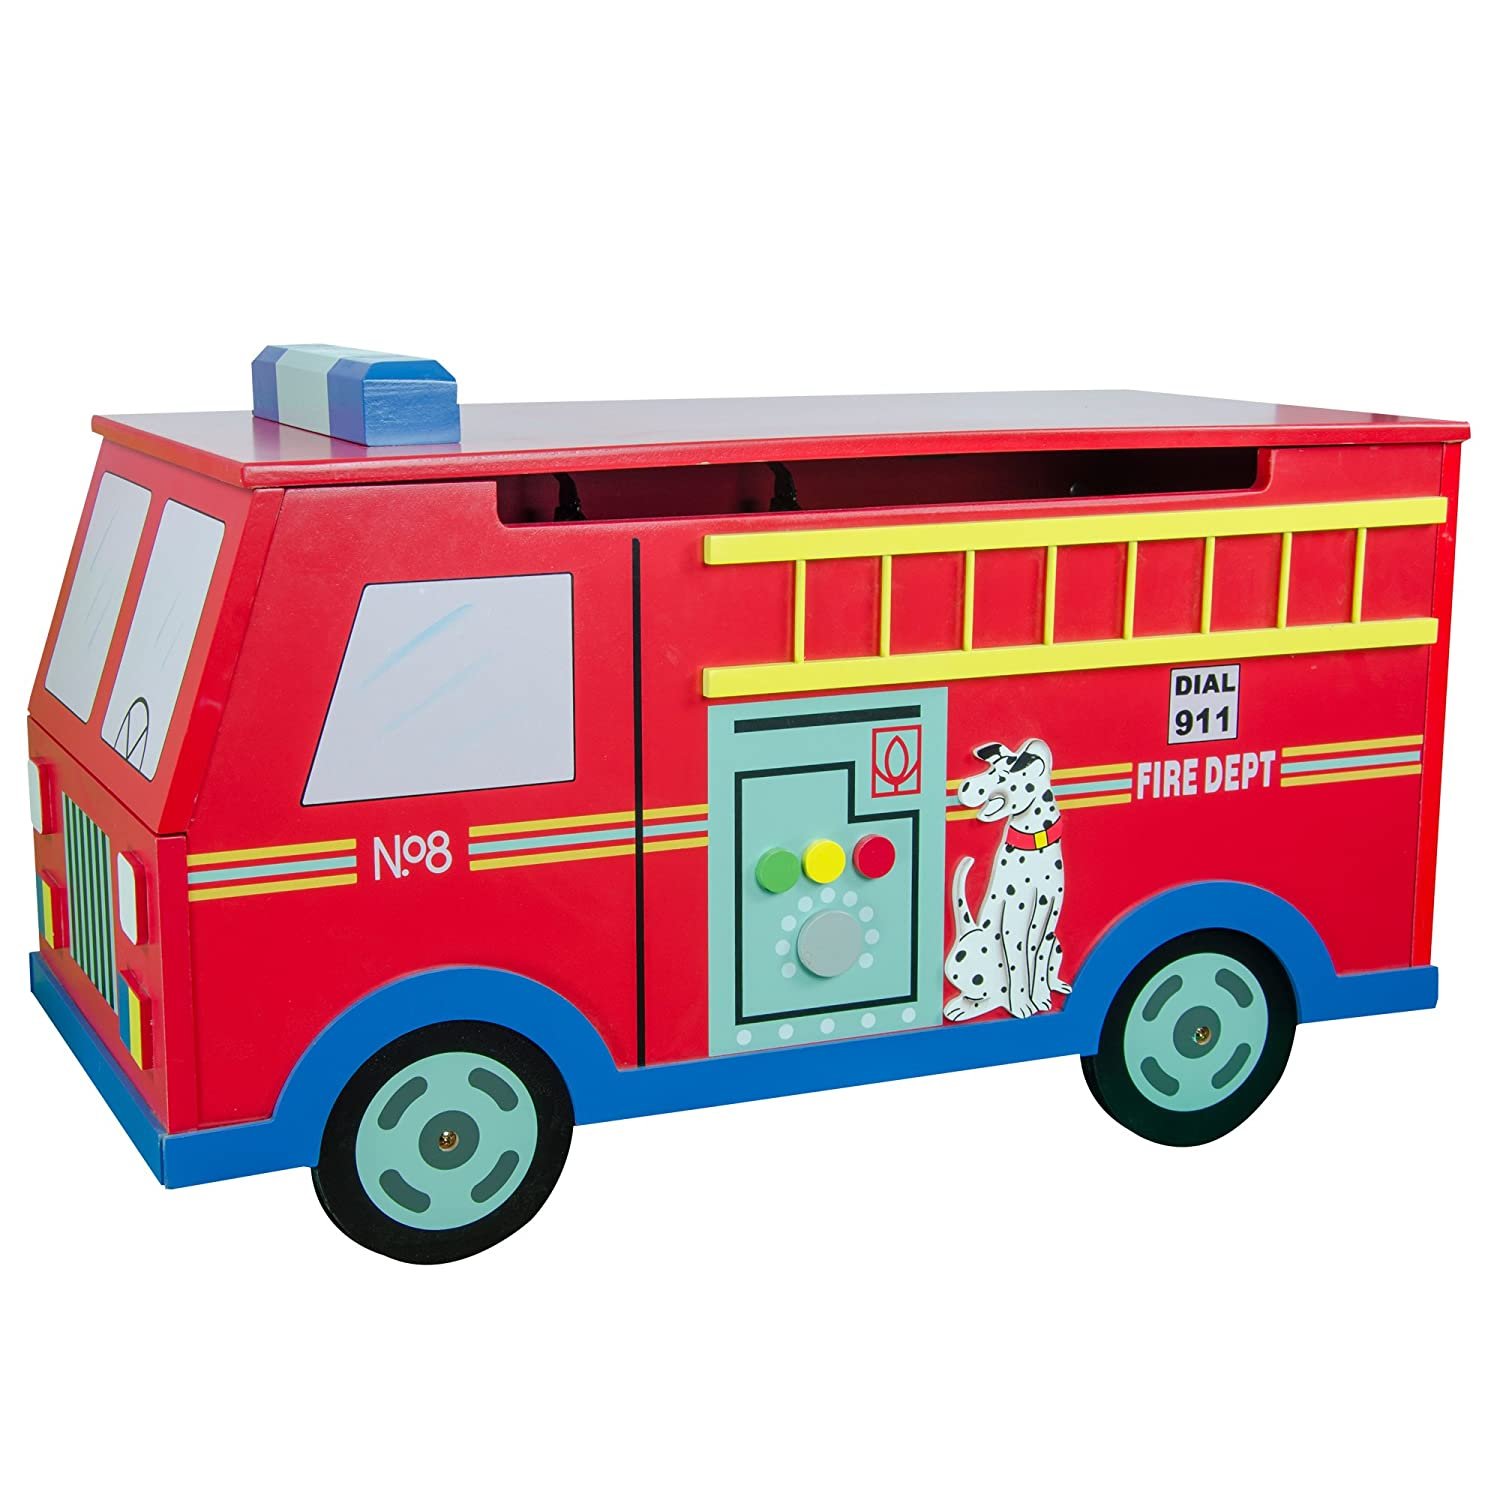 Teamson Kids Fire Engine Tronco su Ruote W-4007A arredo